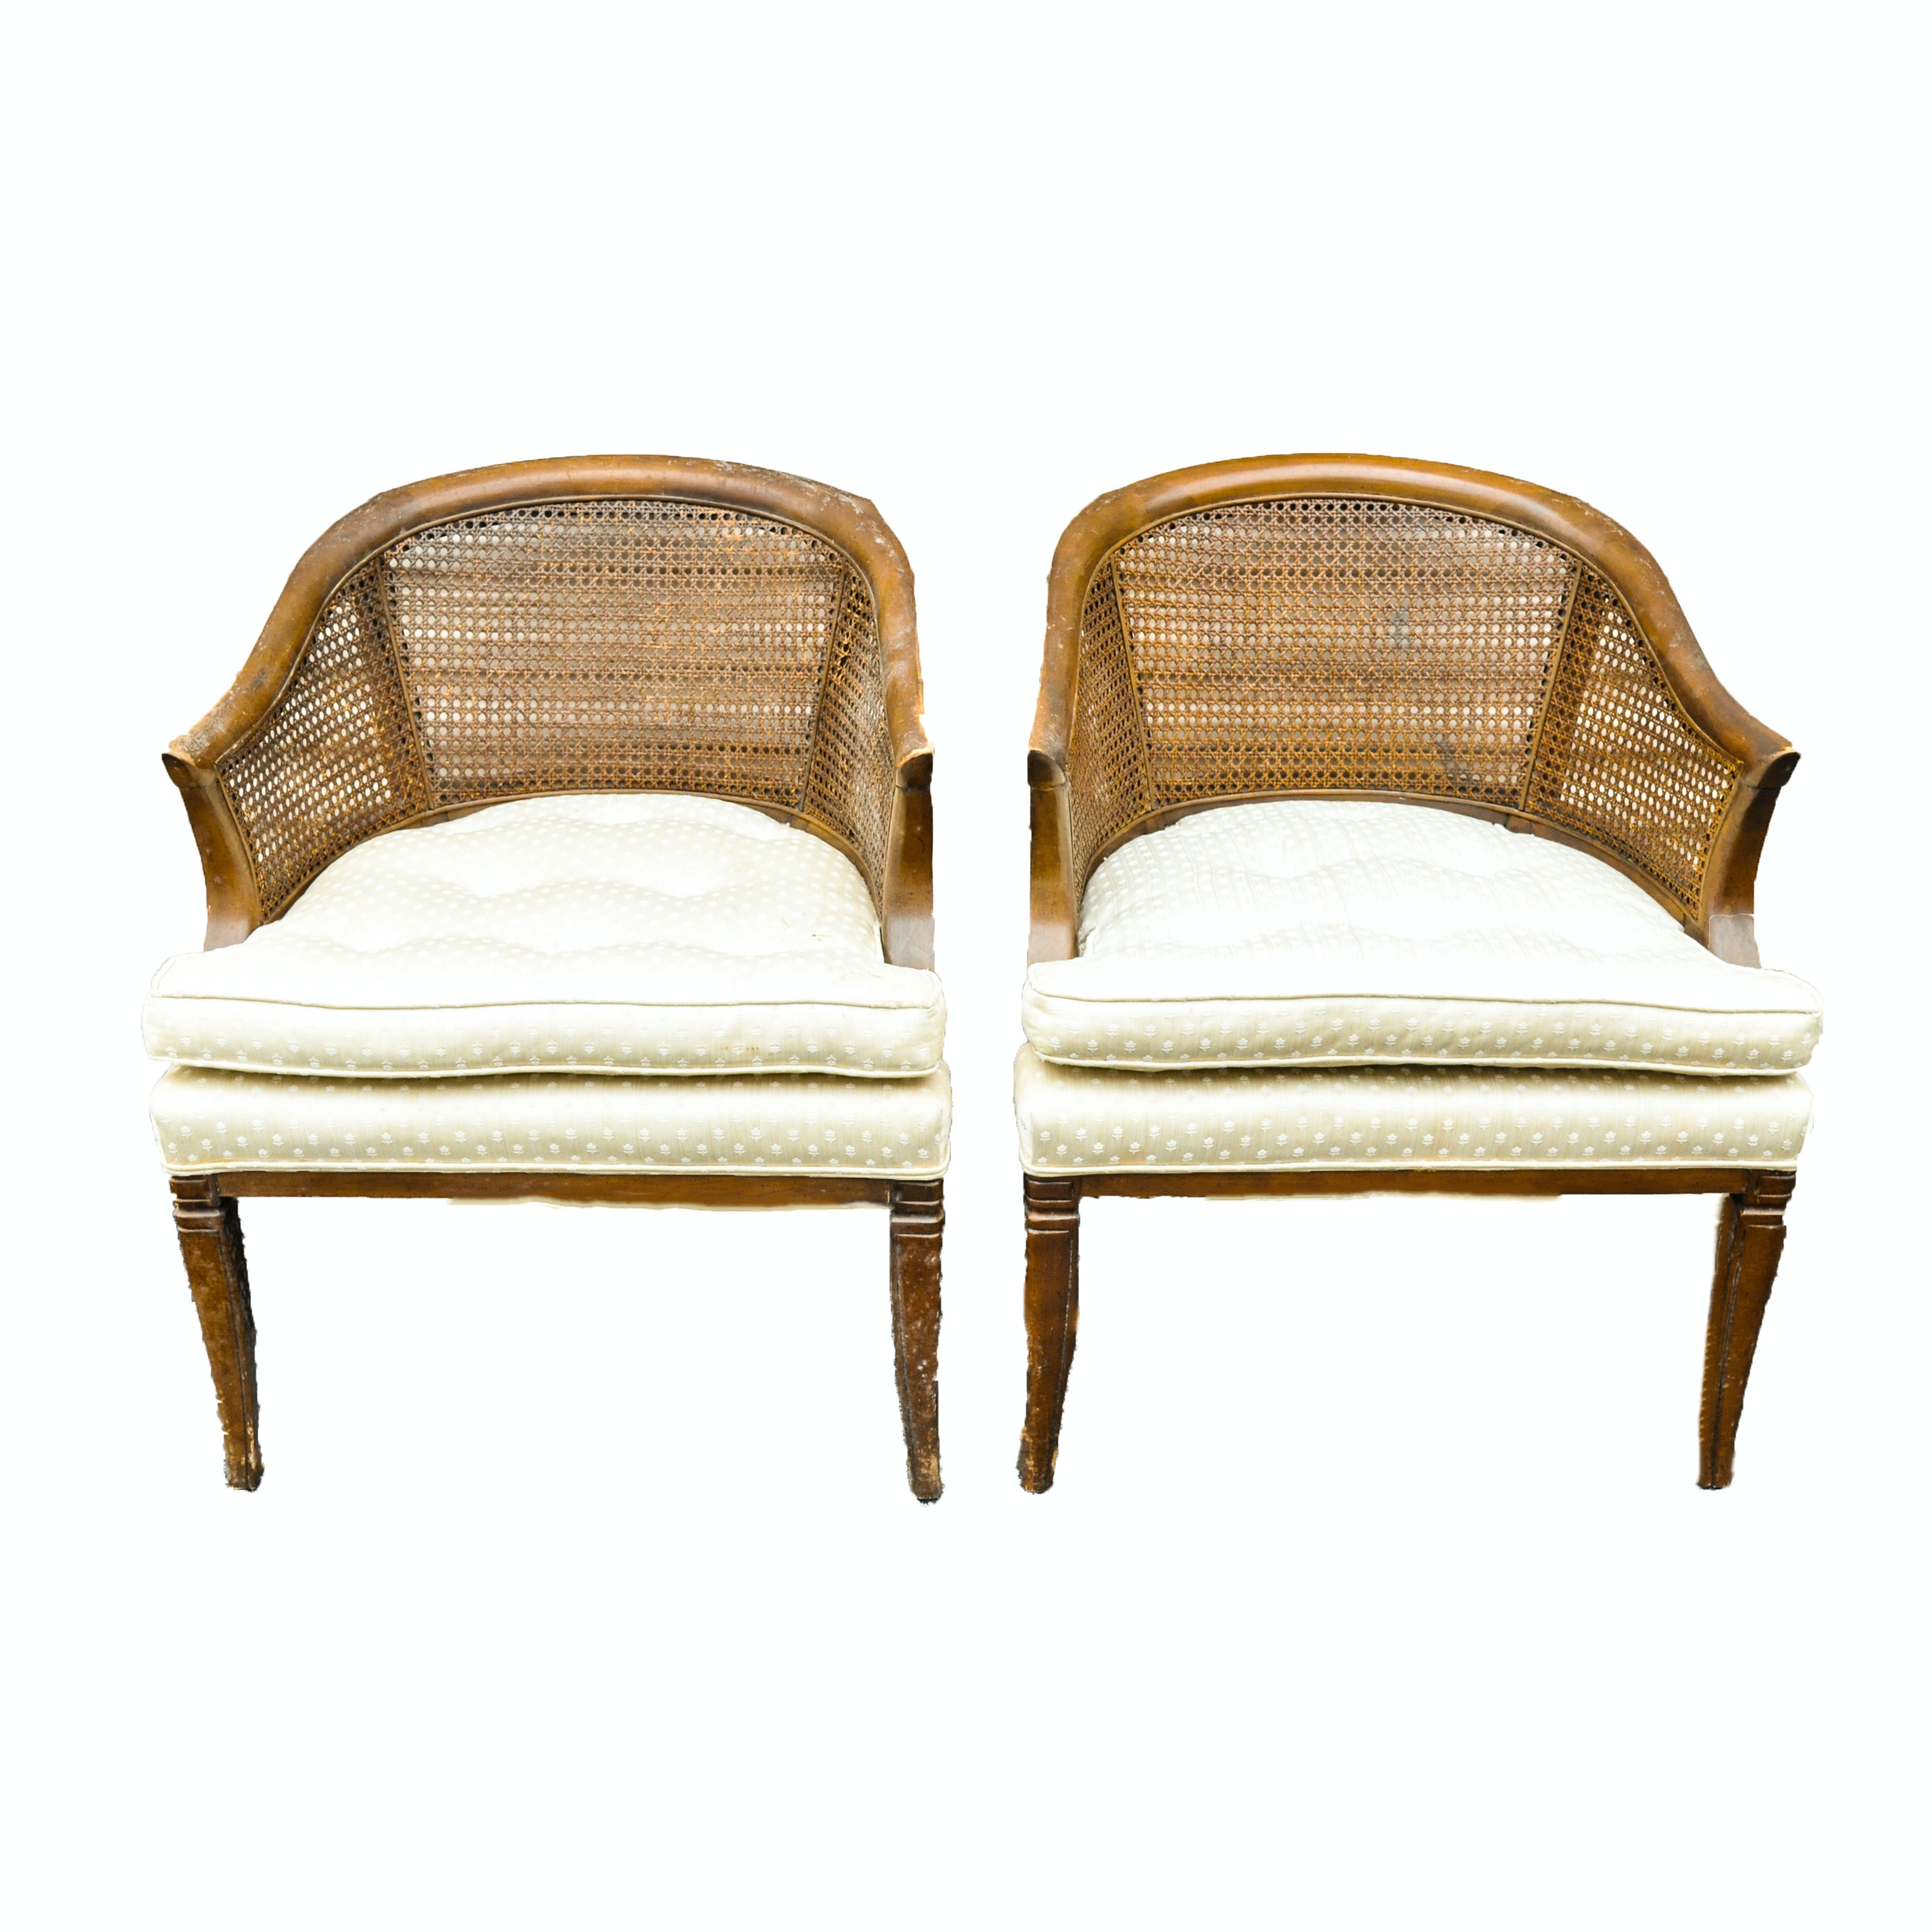 Vintage Cane Barrel Chairs